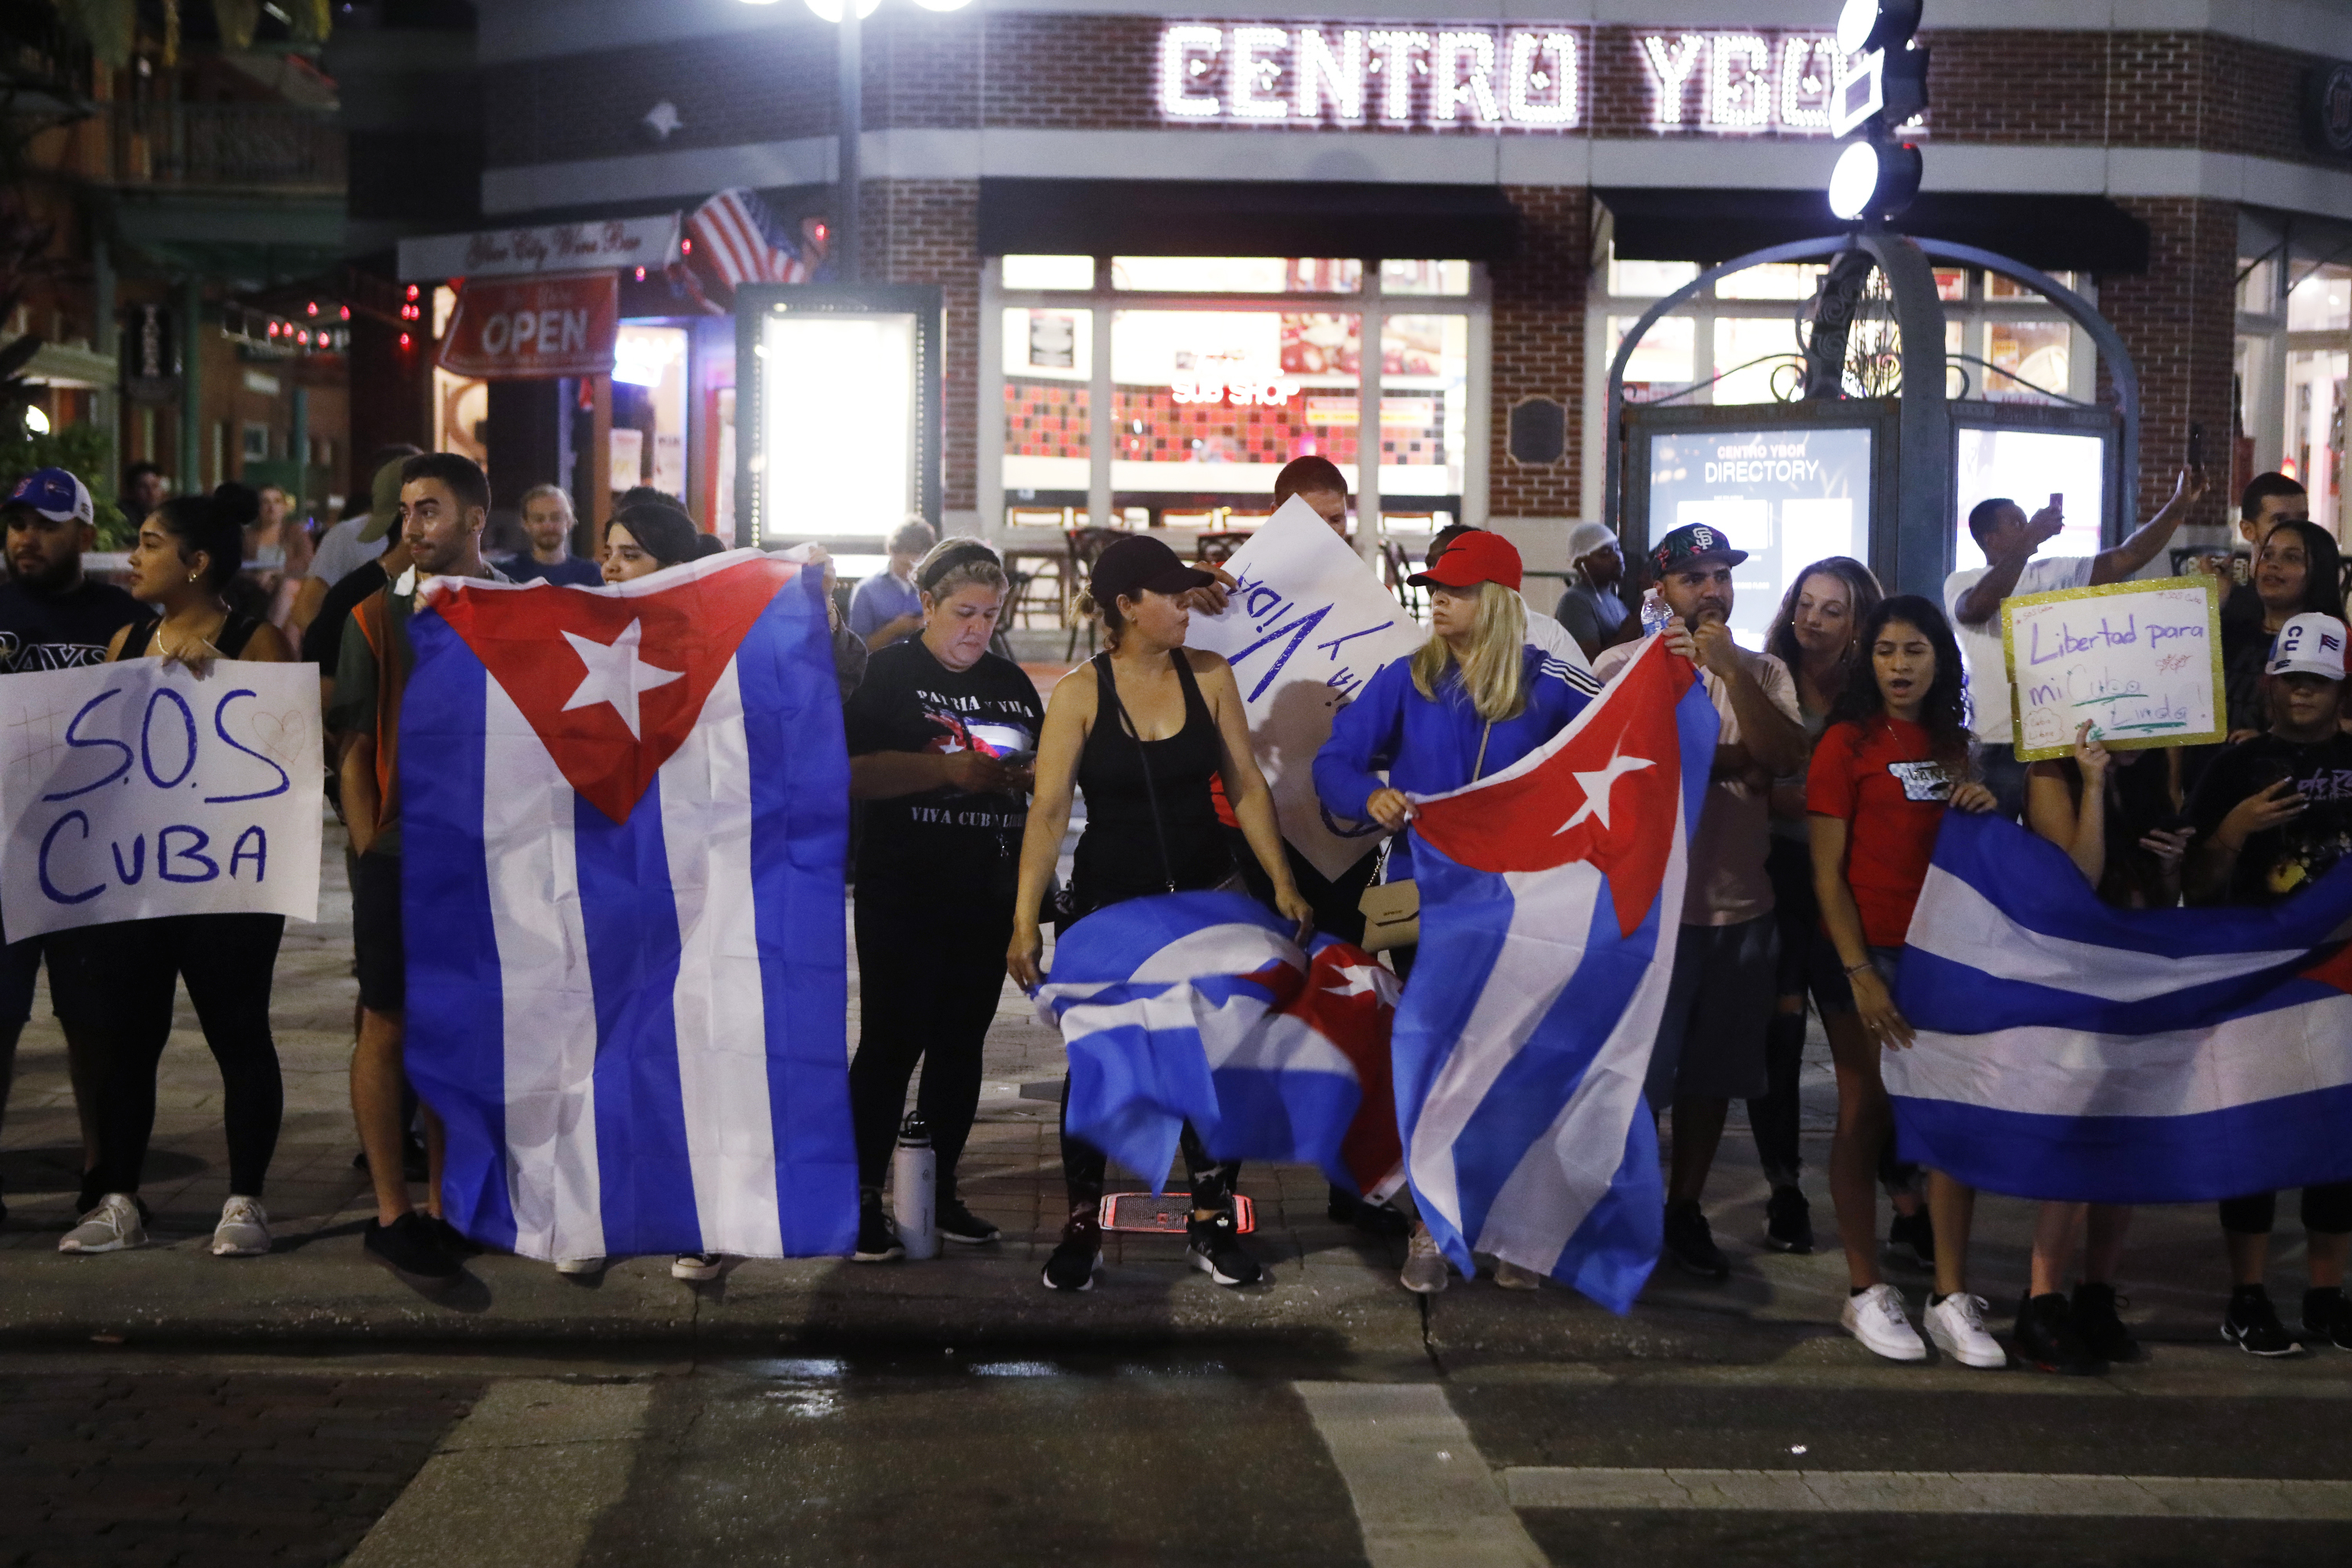 Cuban-Americans and sympathizers protest against the Cuban government in the historic neighborhood of Ybor City, on July 14, 2021 in Tampa, Florida. (Photo by Octavio Jones/Getty Images)